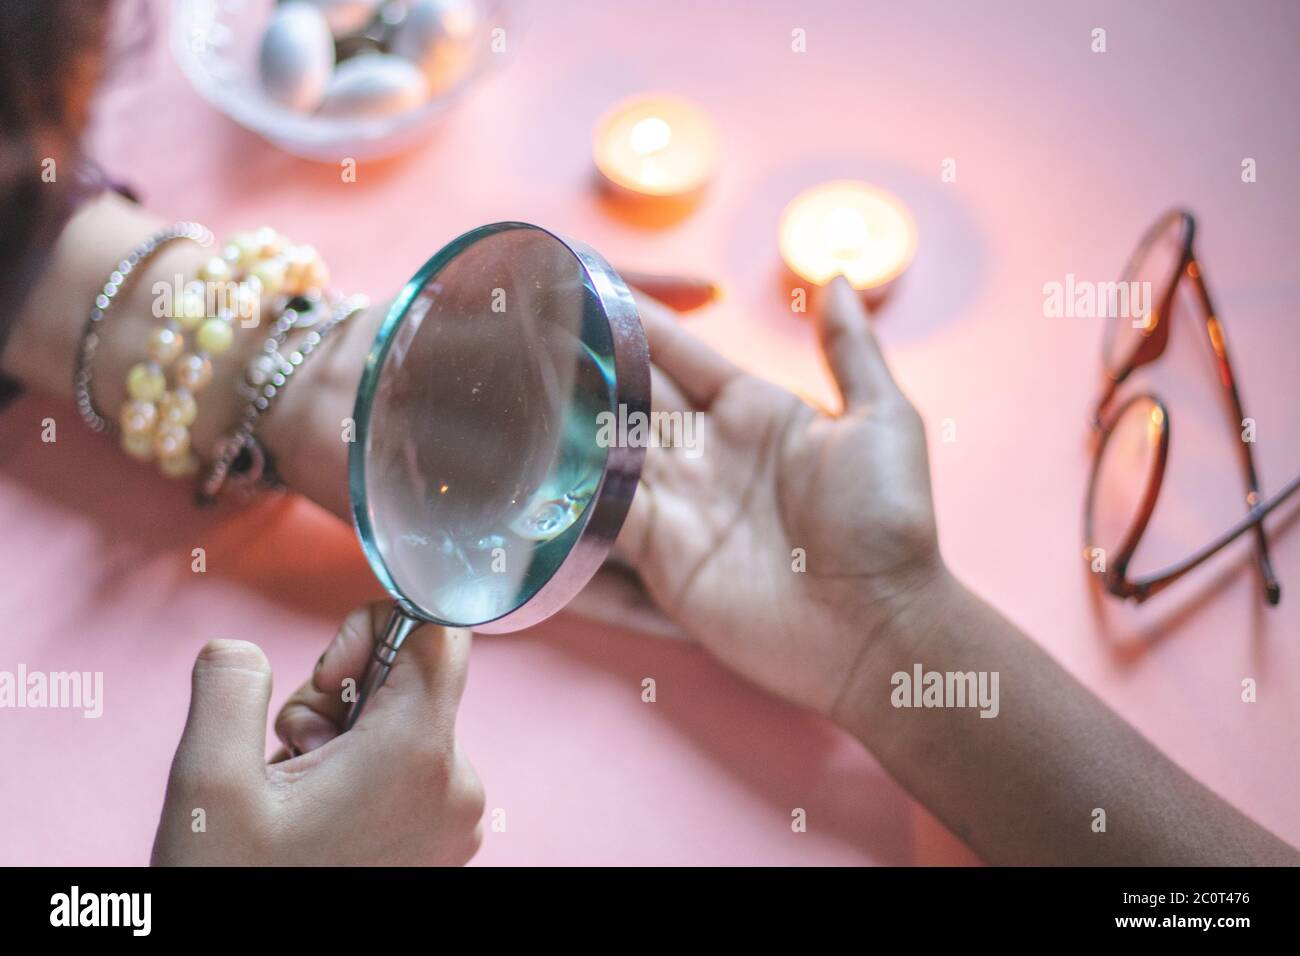 palmistry fortune teller reads lines on hand or palm to tell future. Stock Photo